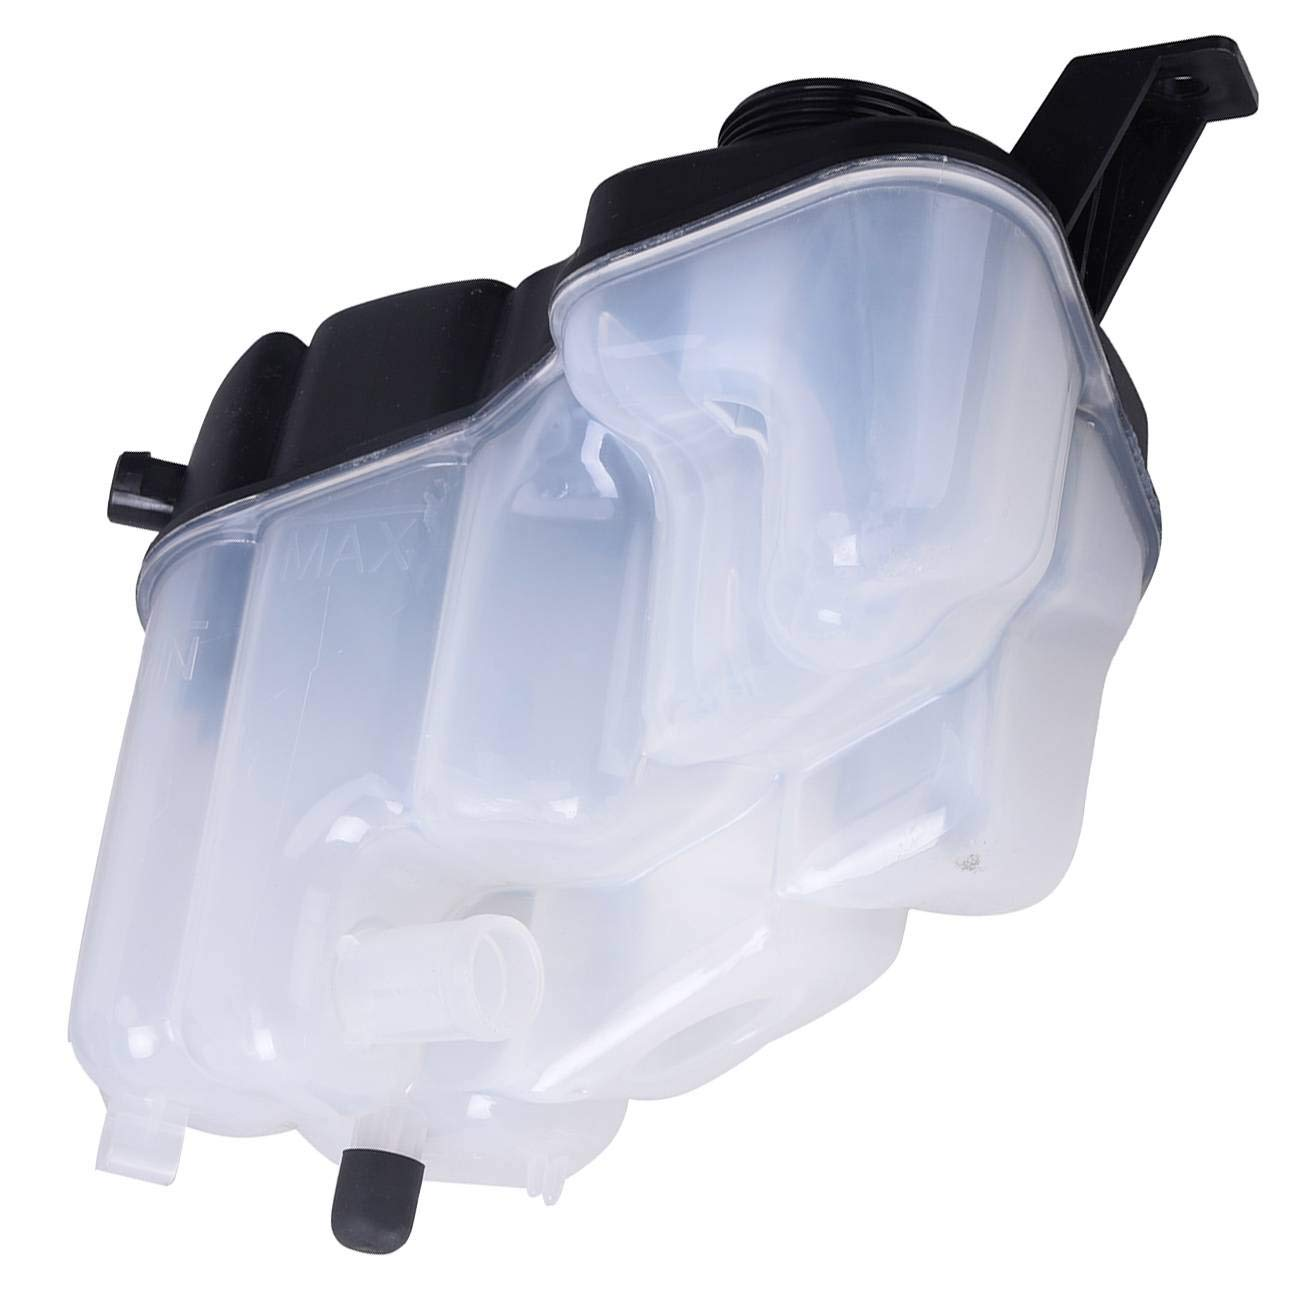 Bapmic 31200320 Engine Coolant Recovery Expansion Tank for Volvo S60 V70 XC70 S80